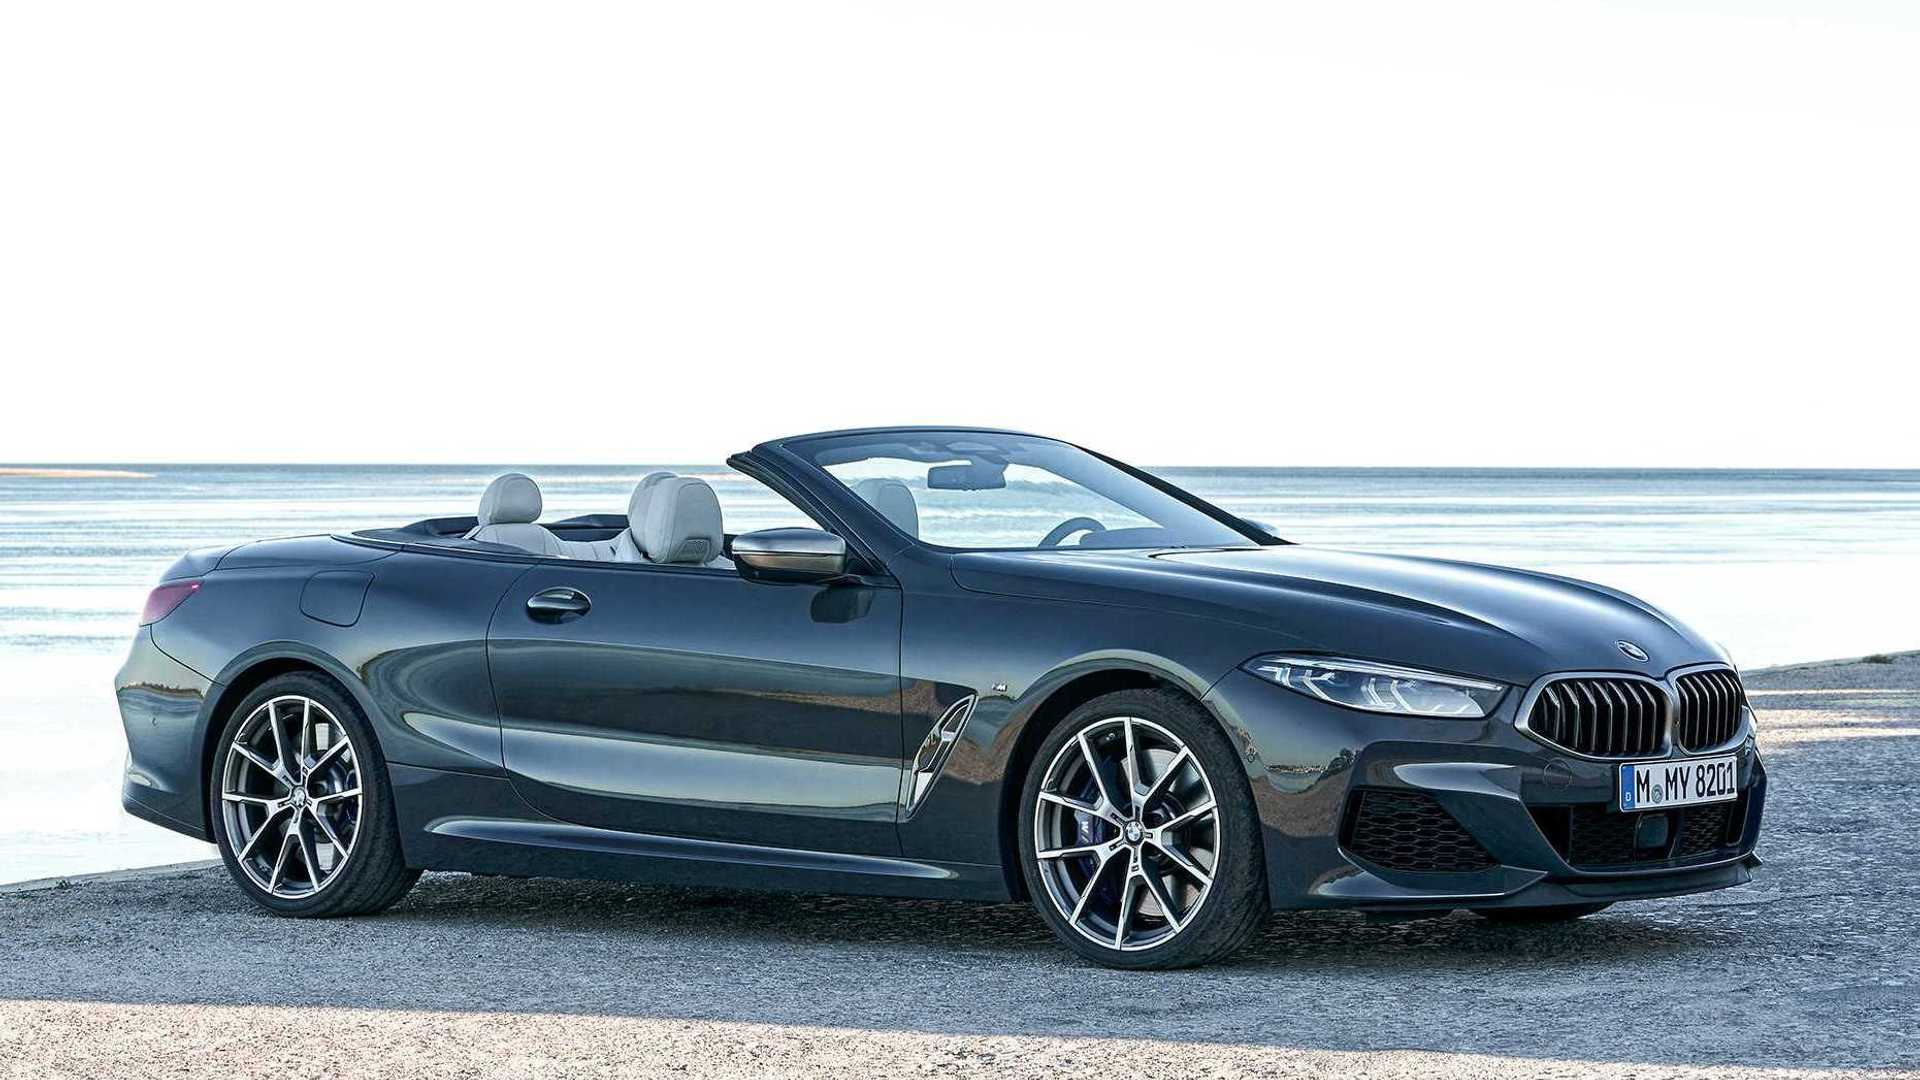 2019 Bmw 8 Series Convertible First Drive Better Than An S Class